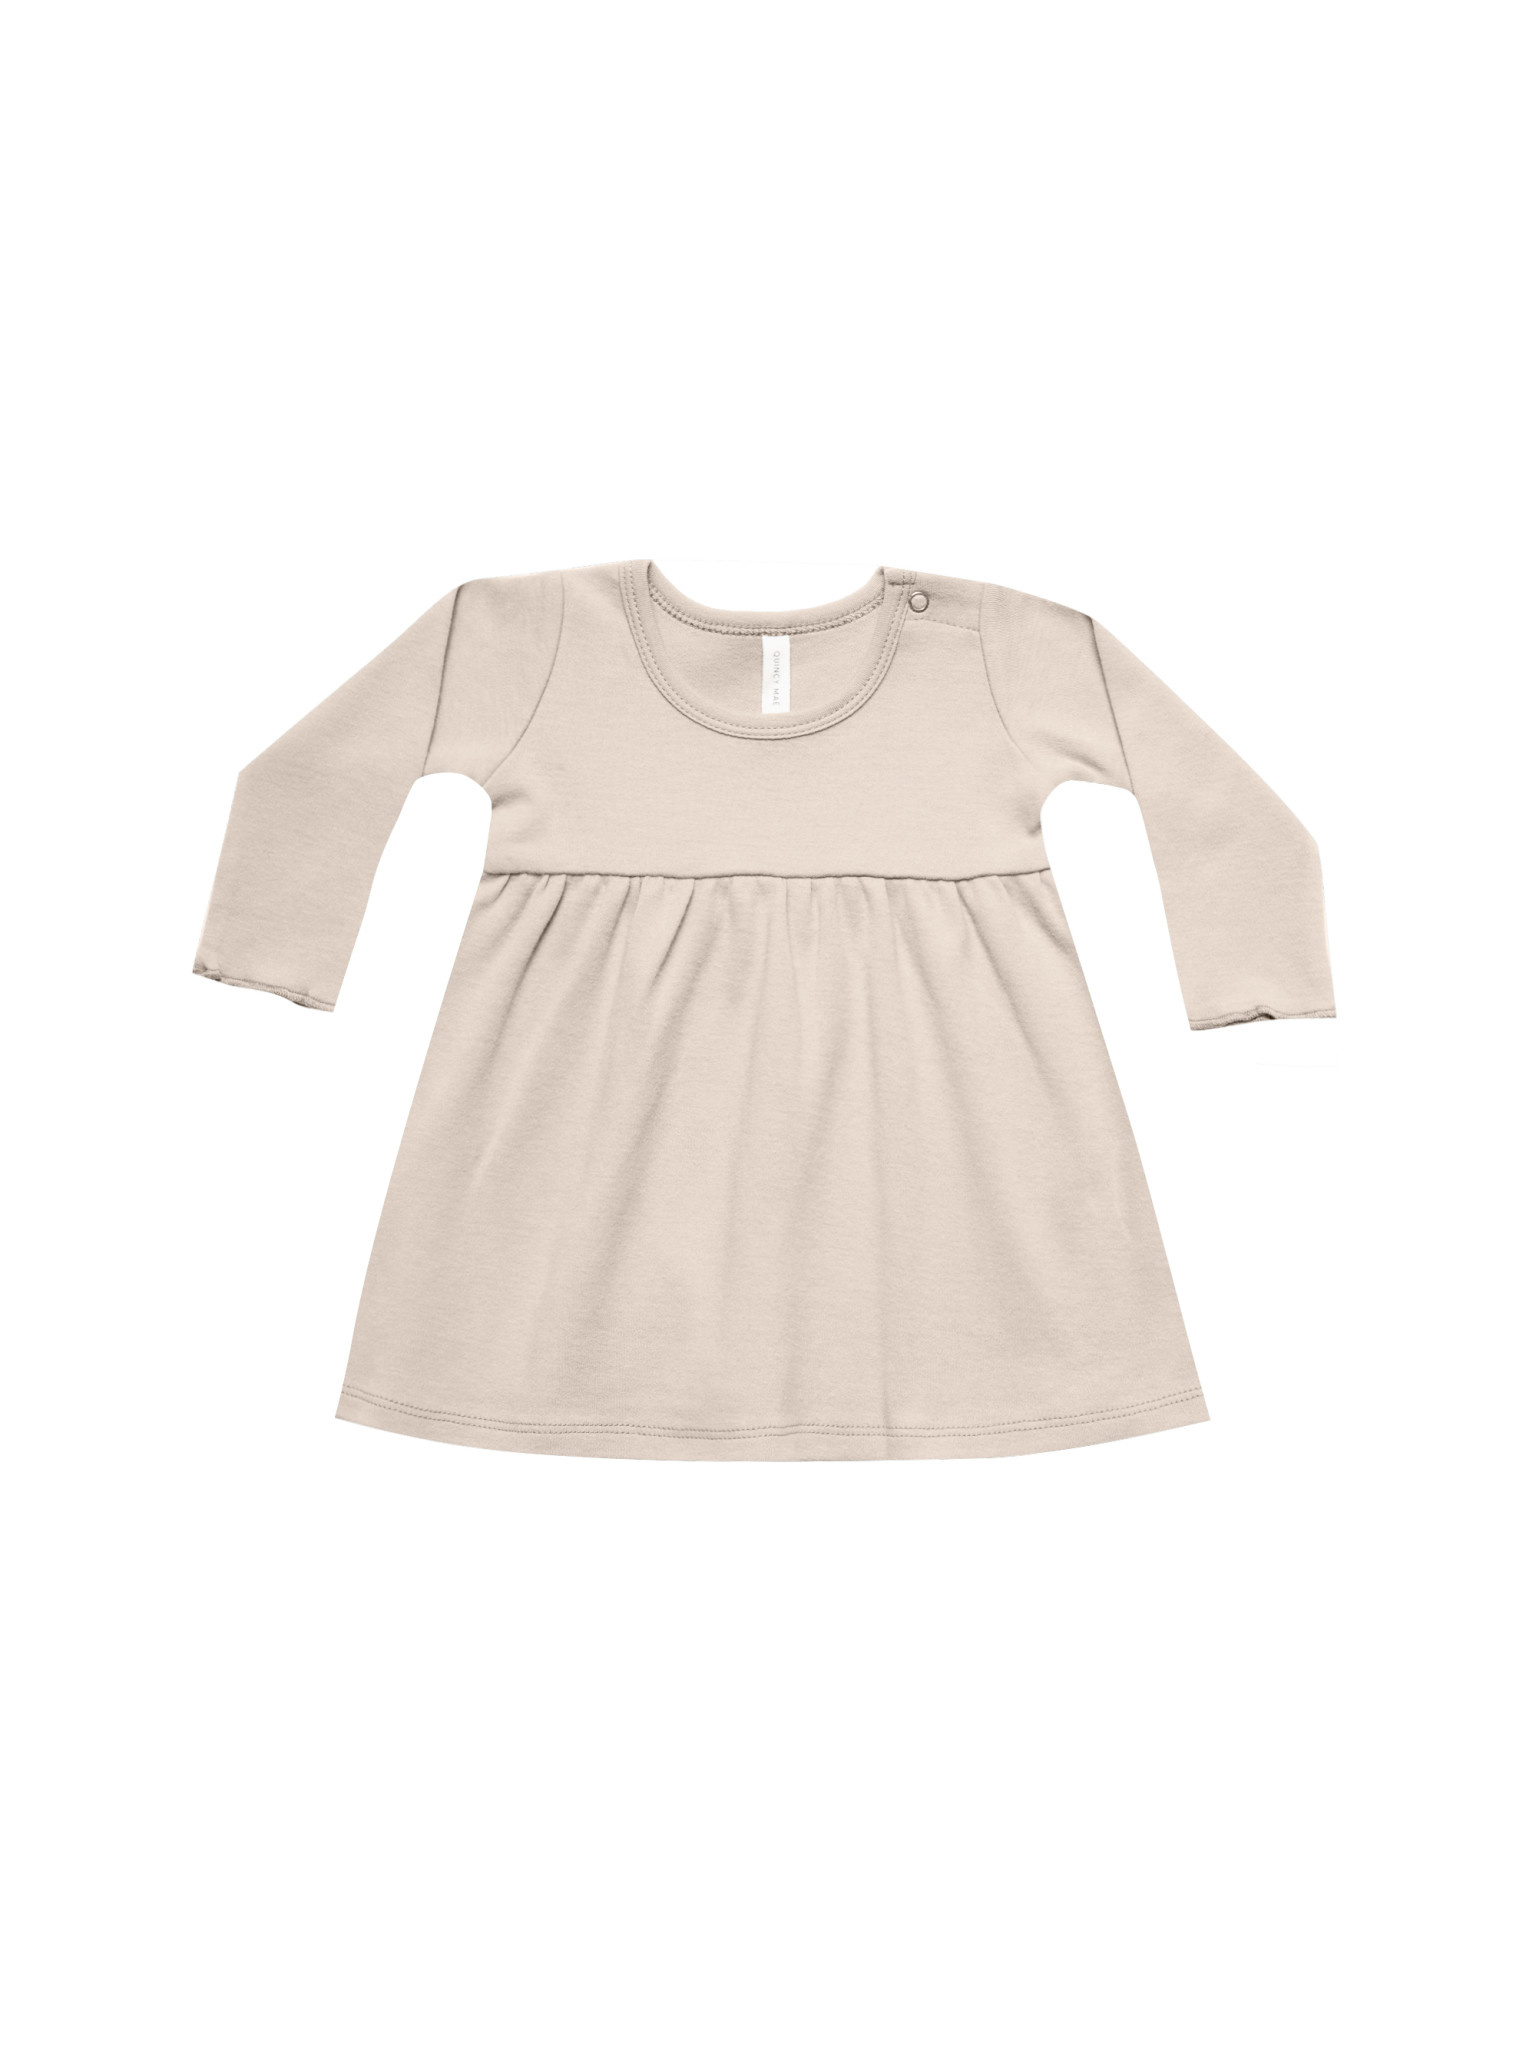 QUINCY MAE Organic Baby Dress